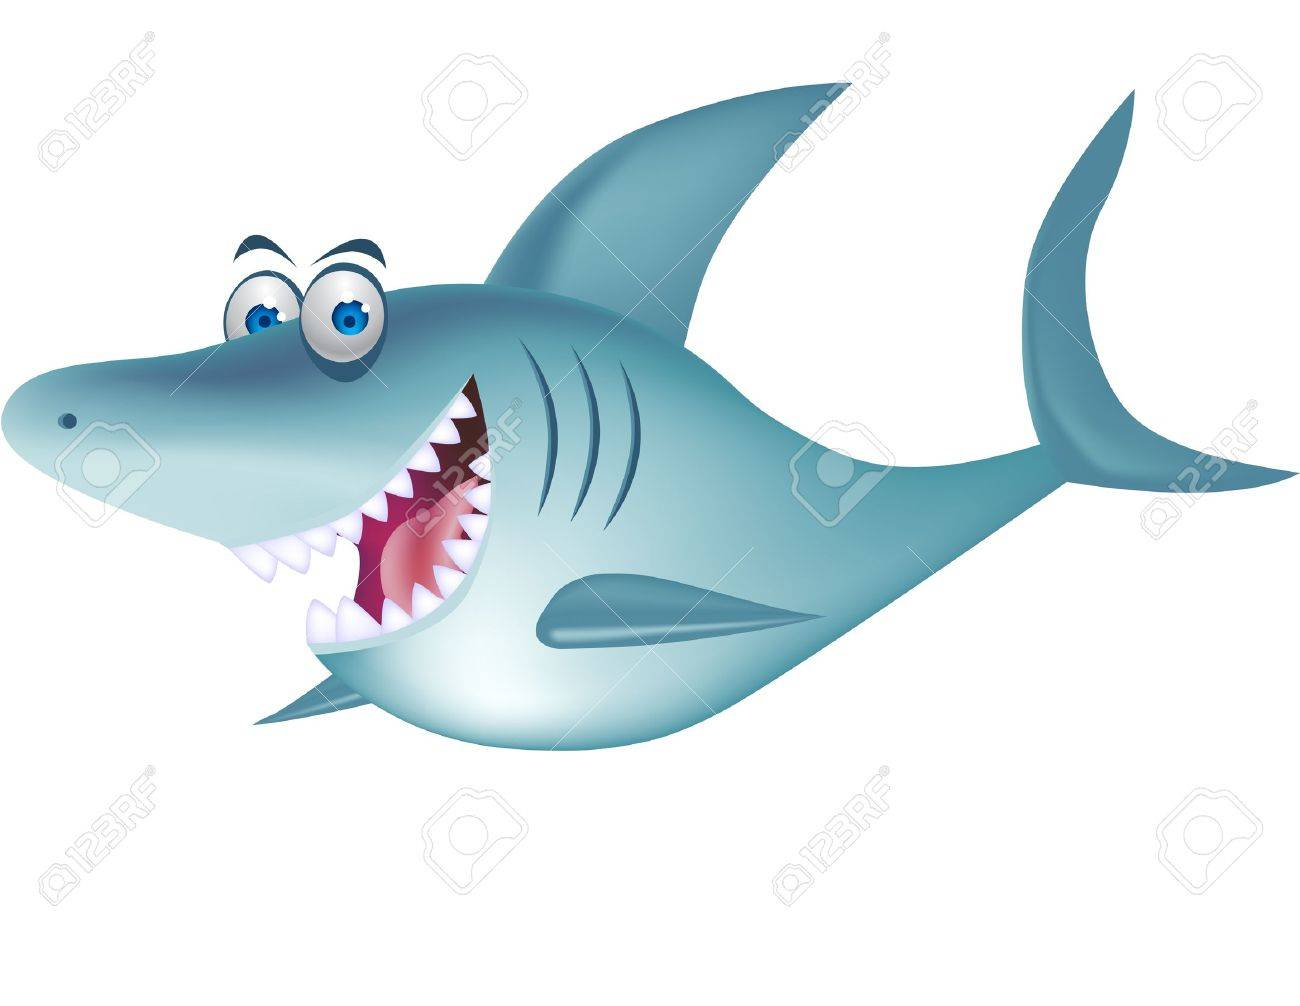 Shark cartoon Stock Vector - 12152644